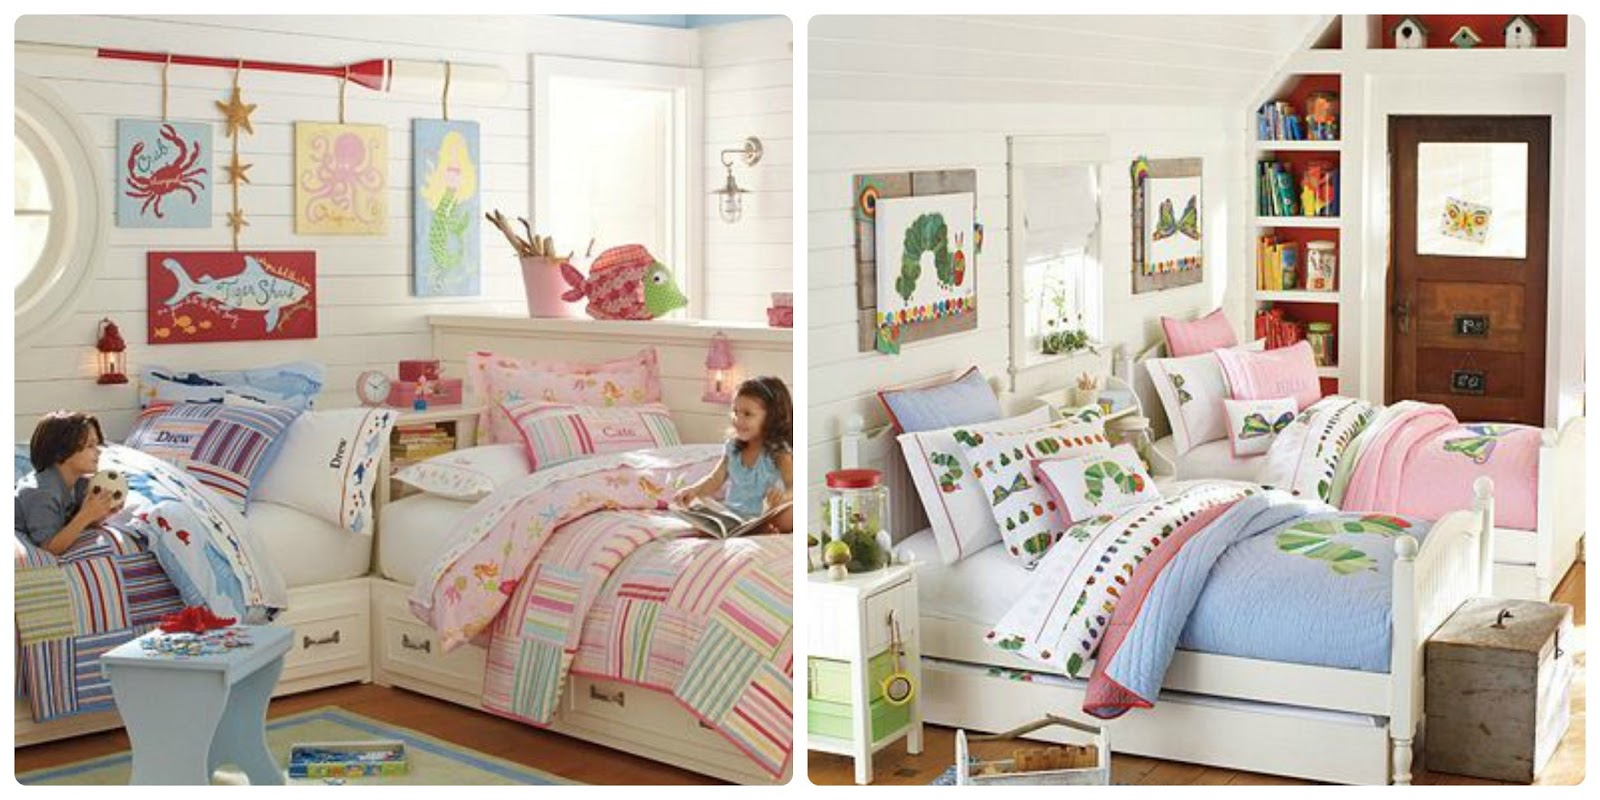 Pepper and buttons best boy girl shared room ideas - Boy girl shared bedroom ideas ...